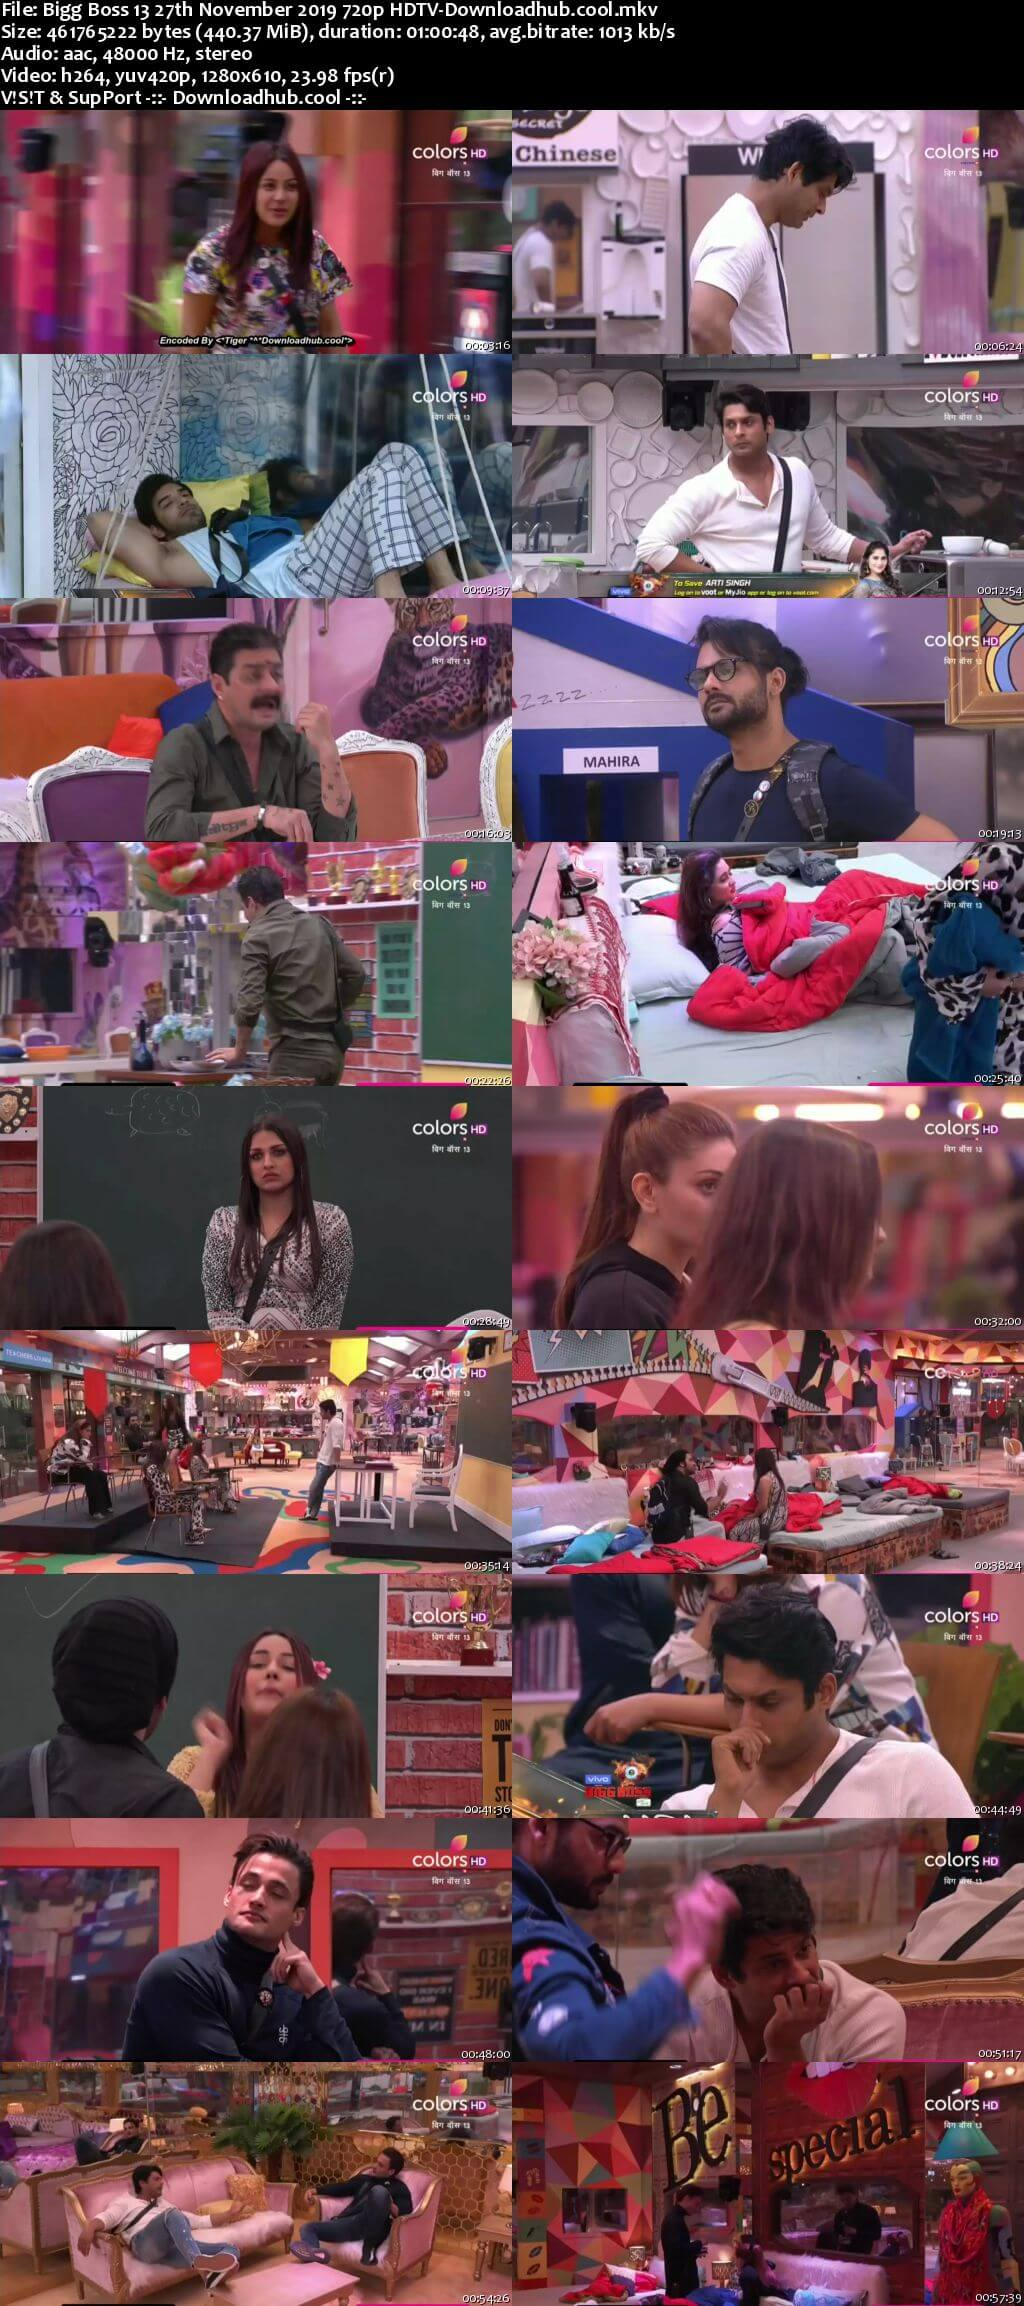 Bigg Boss 13 27 November 2019 Episode 58 HDTV 720p 480p